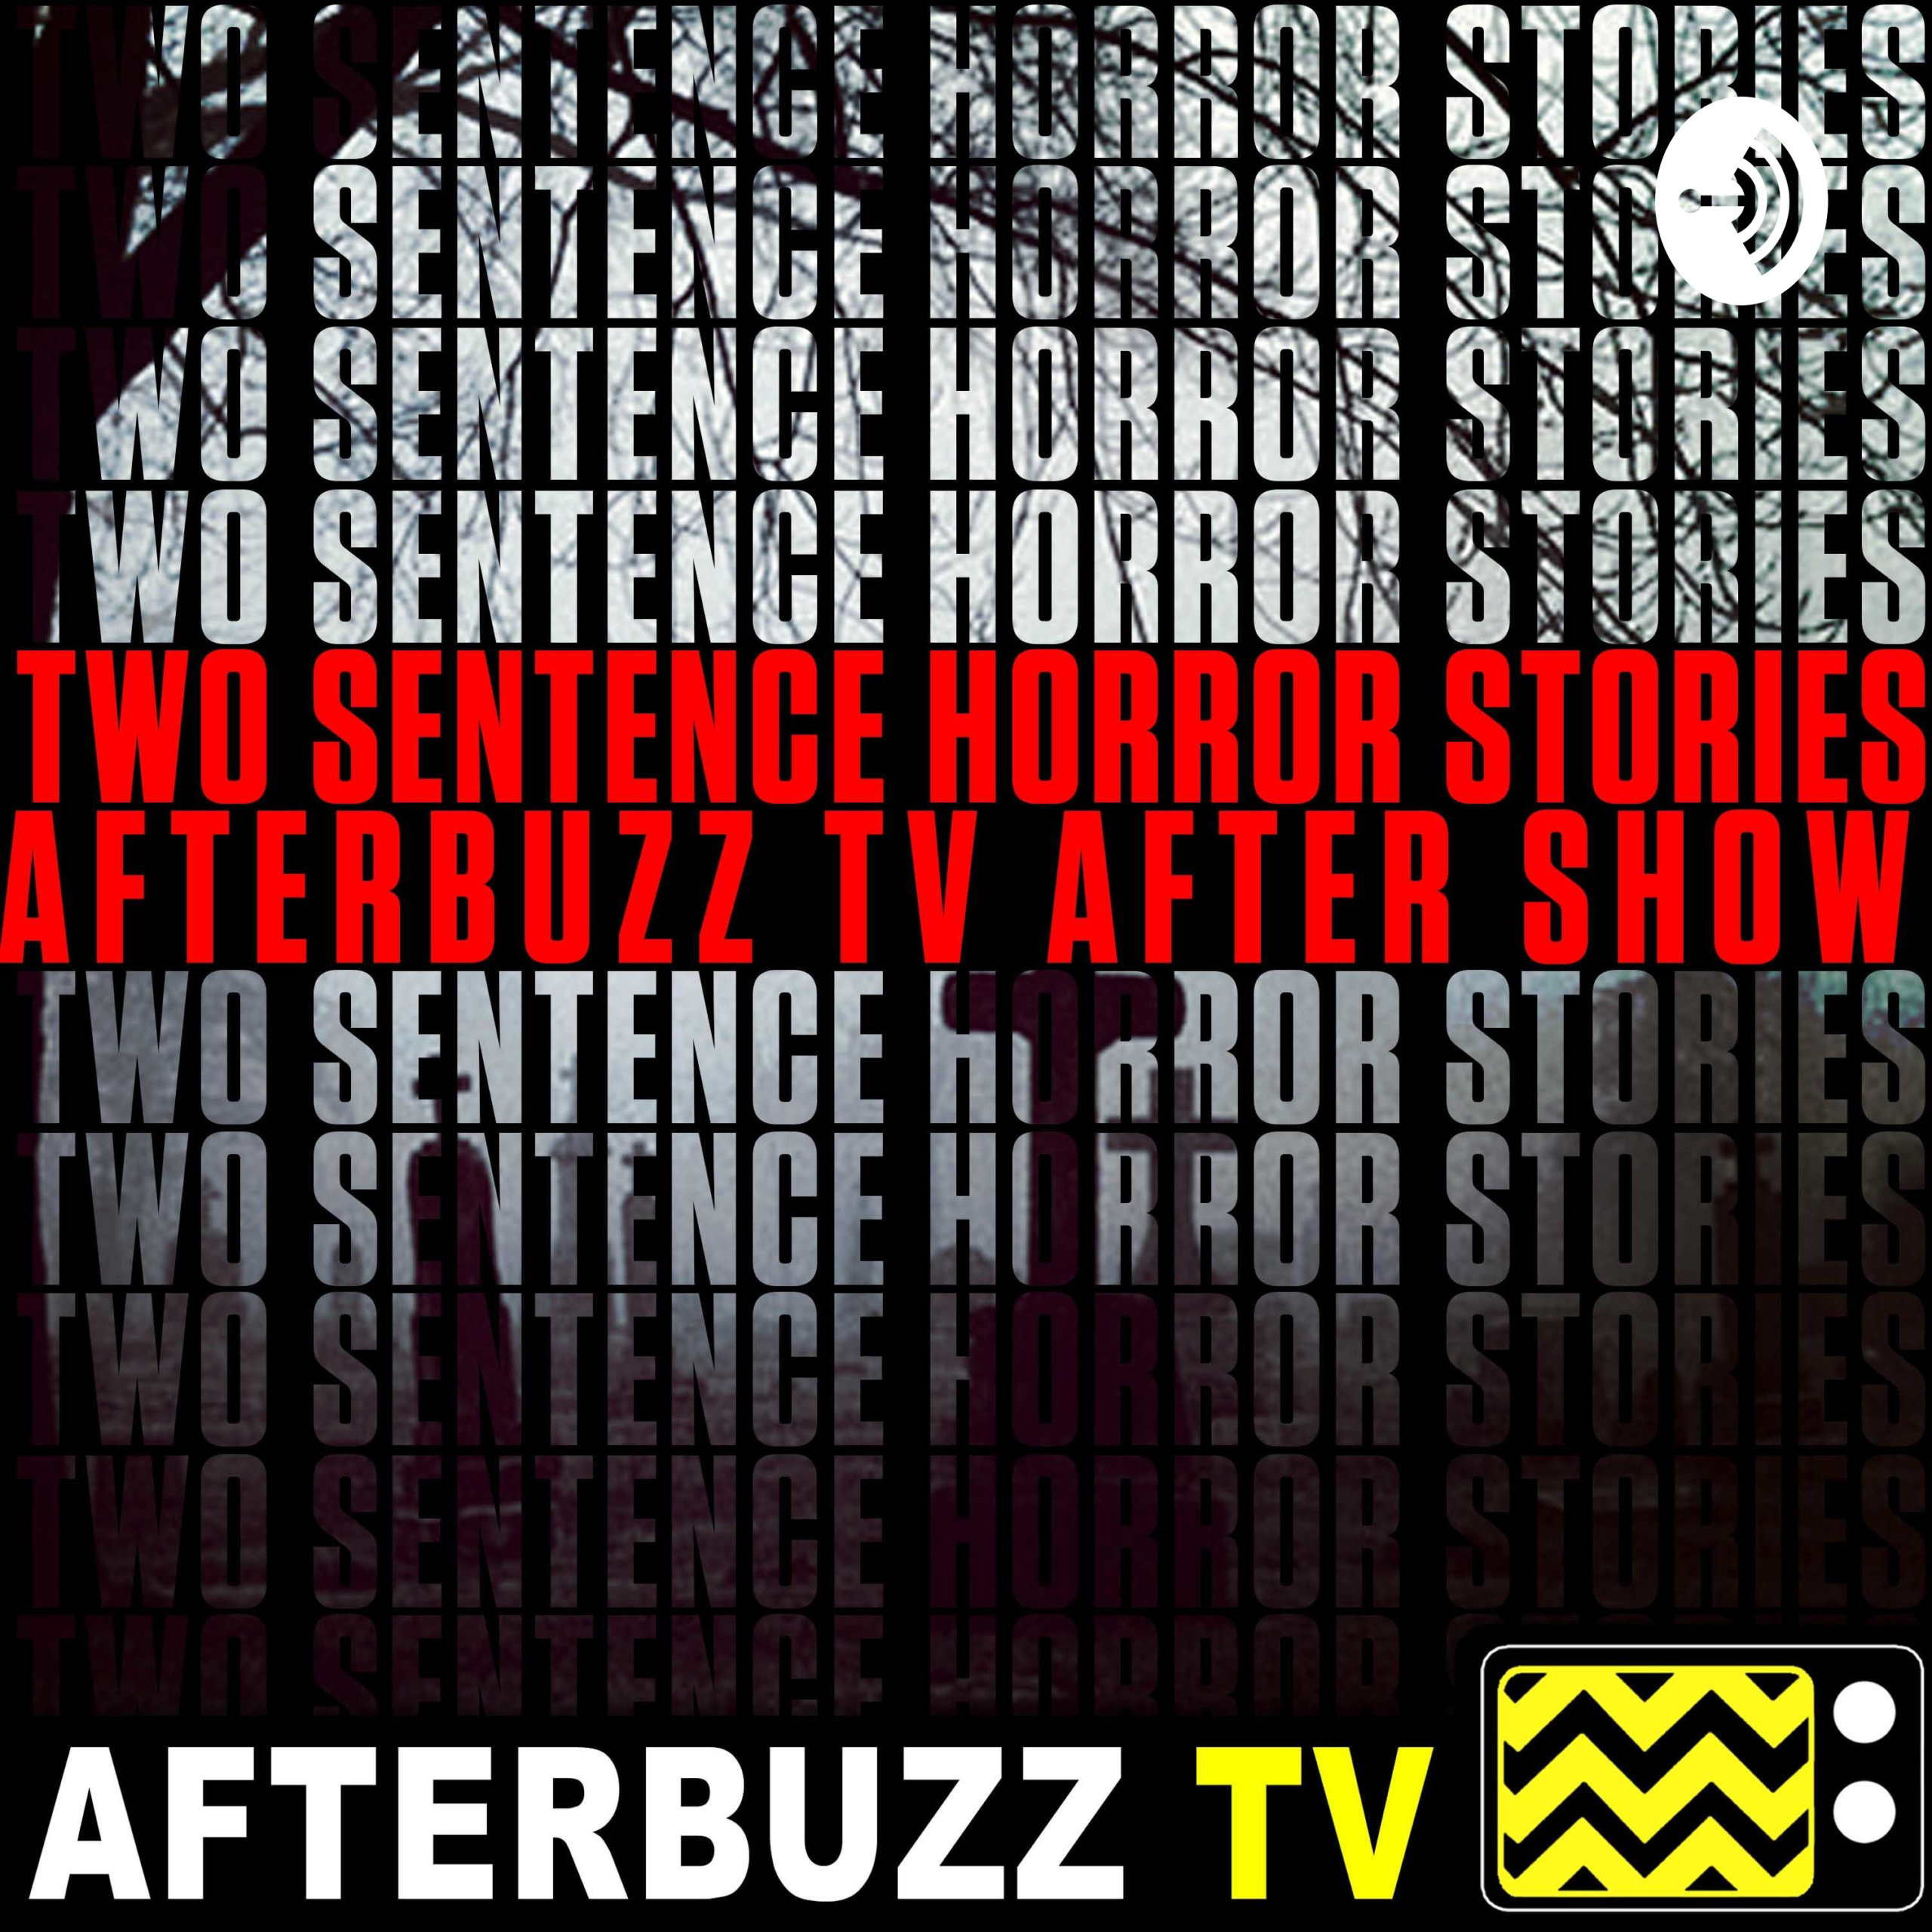 The Two Sentence Horror Stories Podcast